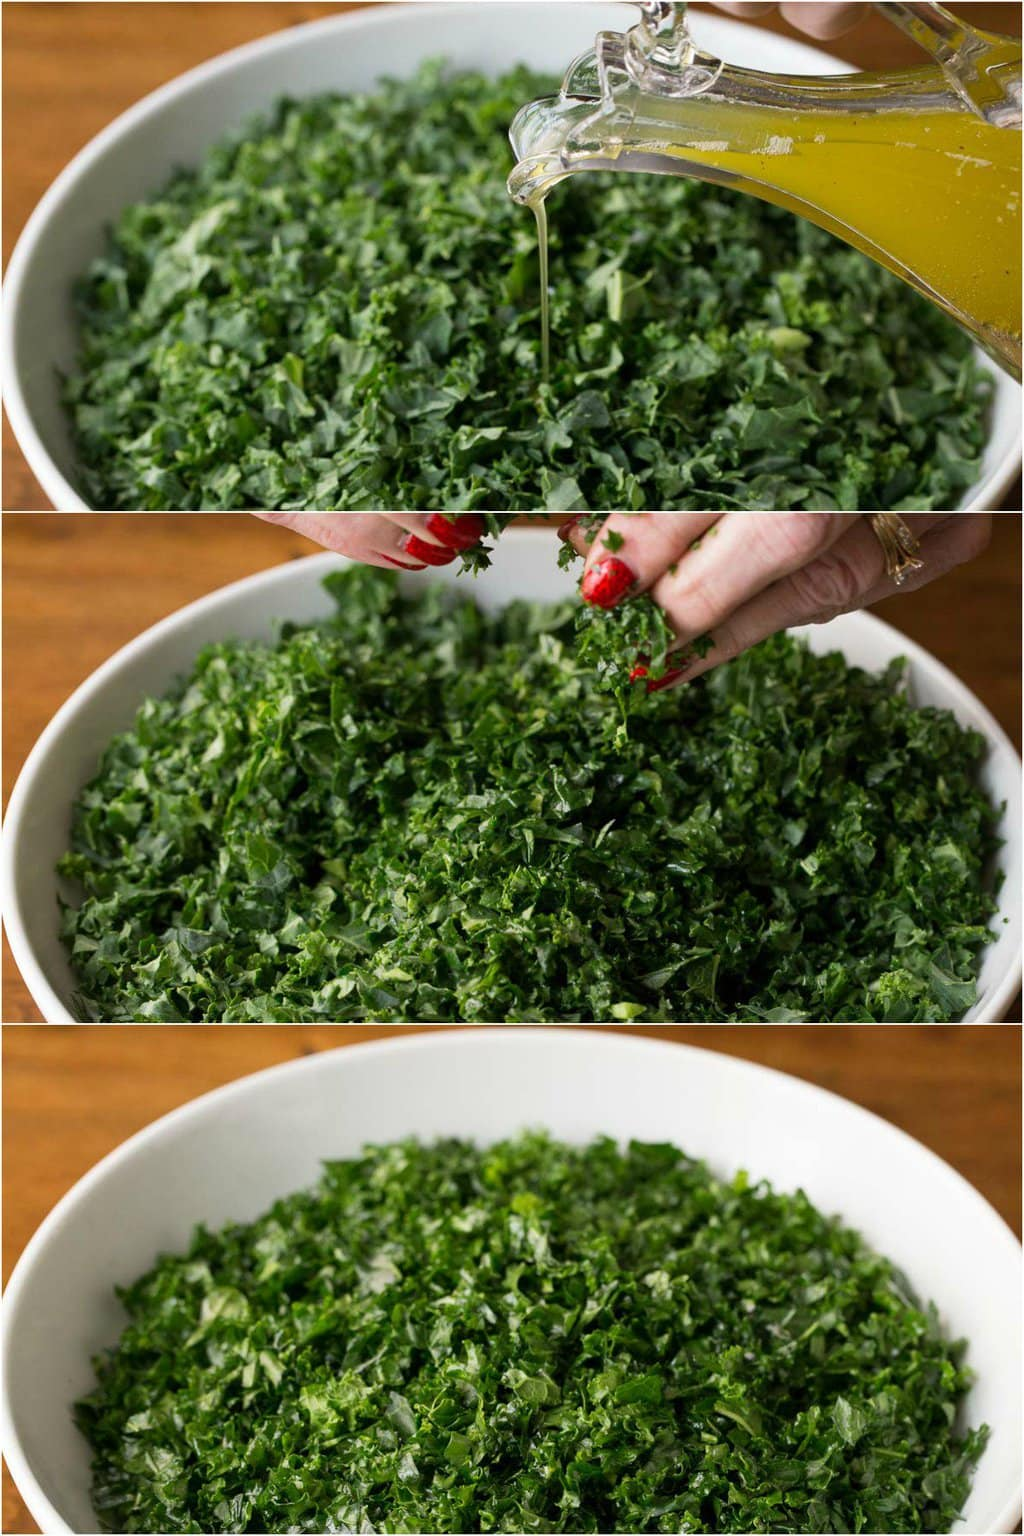 Step by step photos of massaging the kale in a Pomegranate Pear Kale Salad.